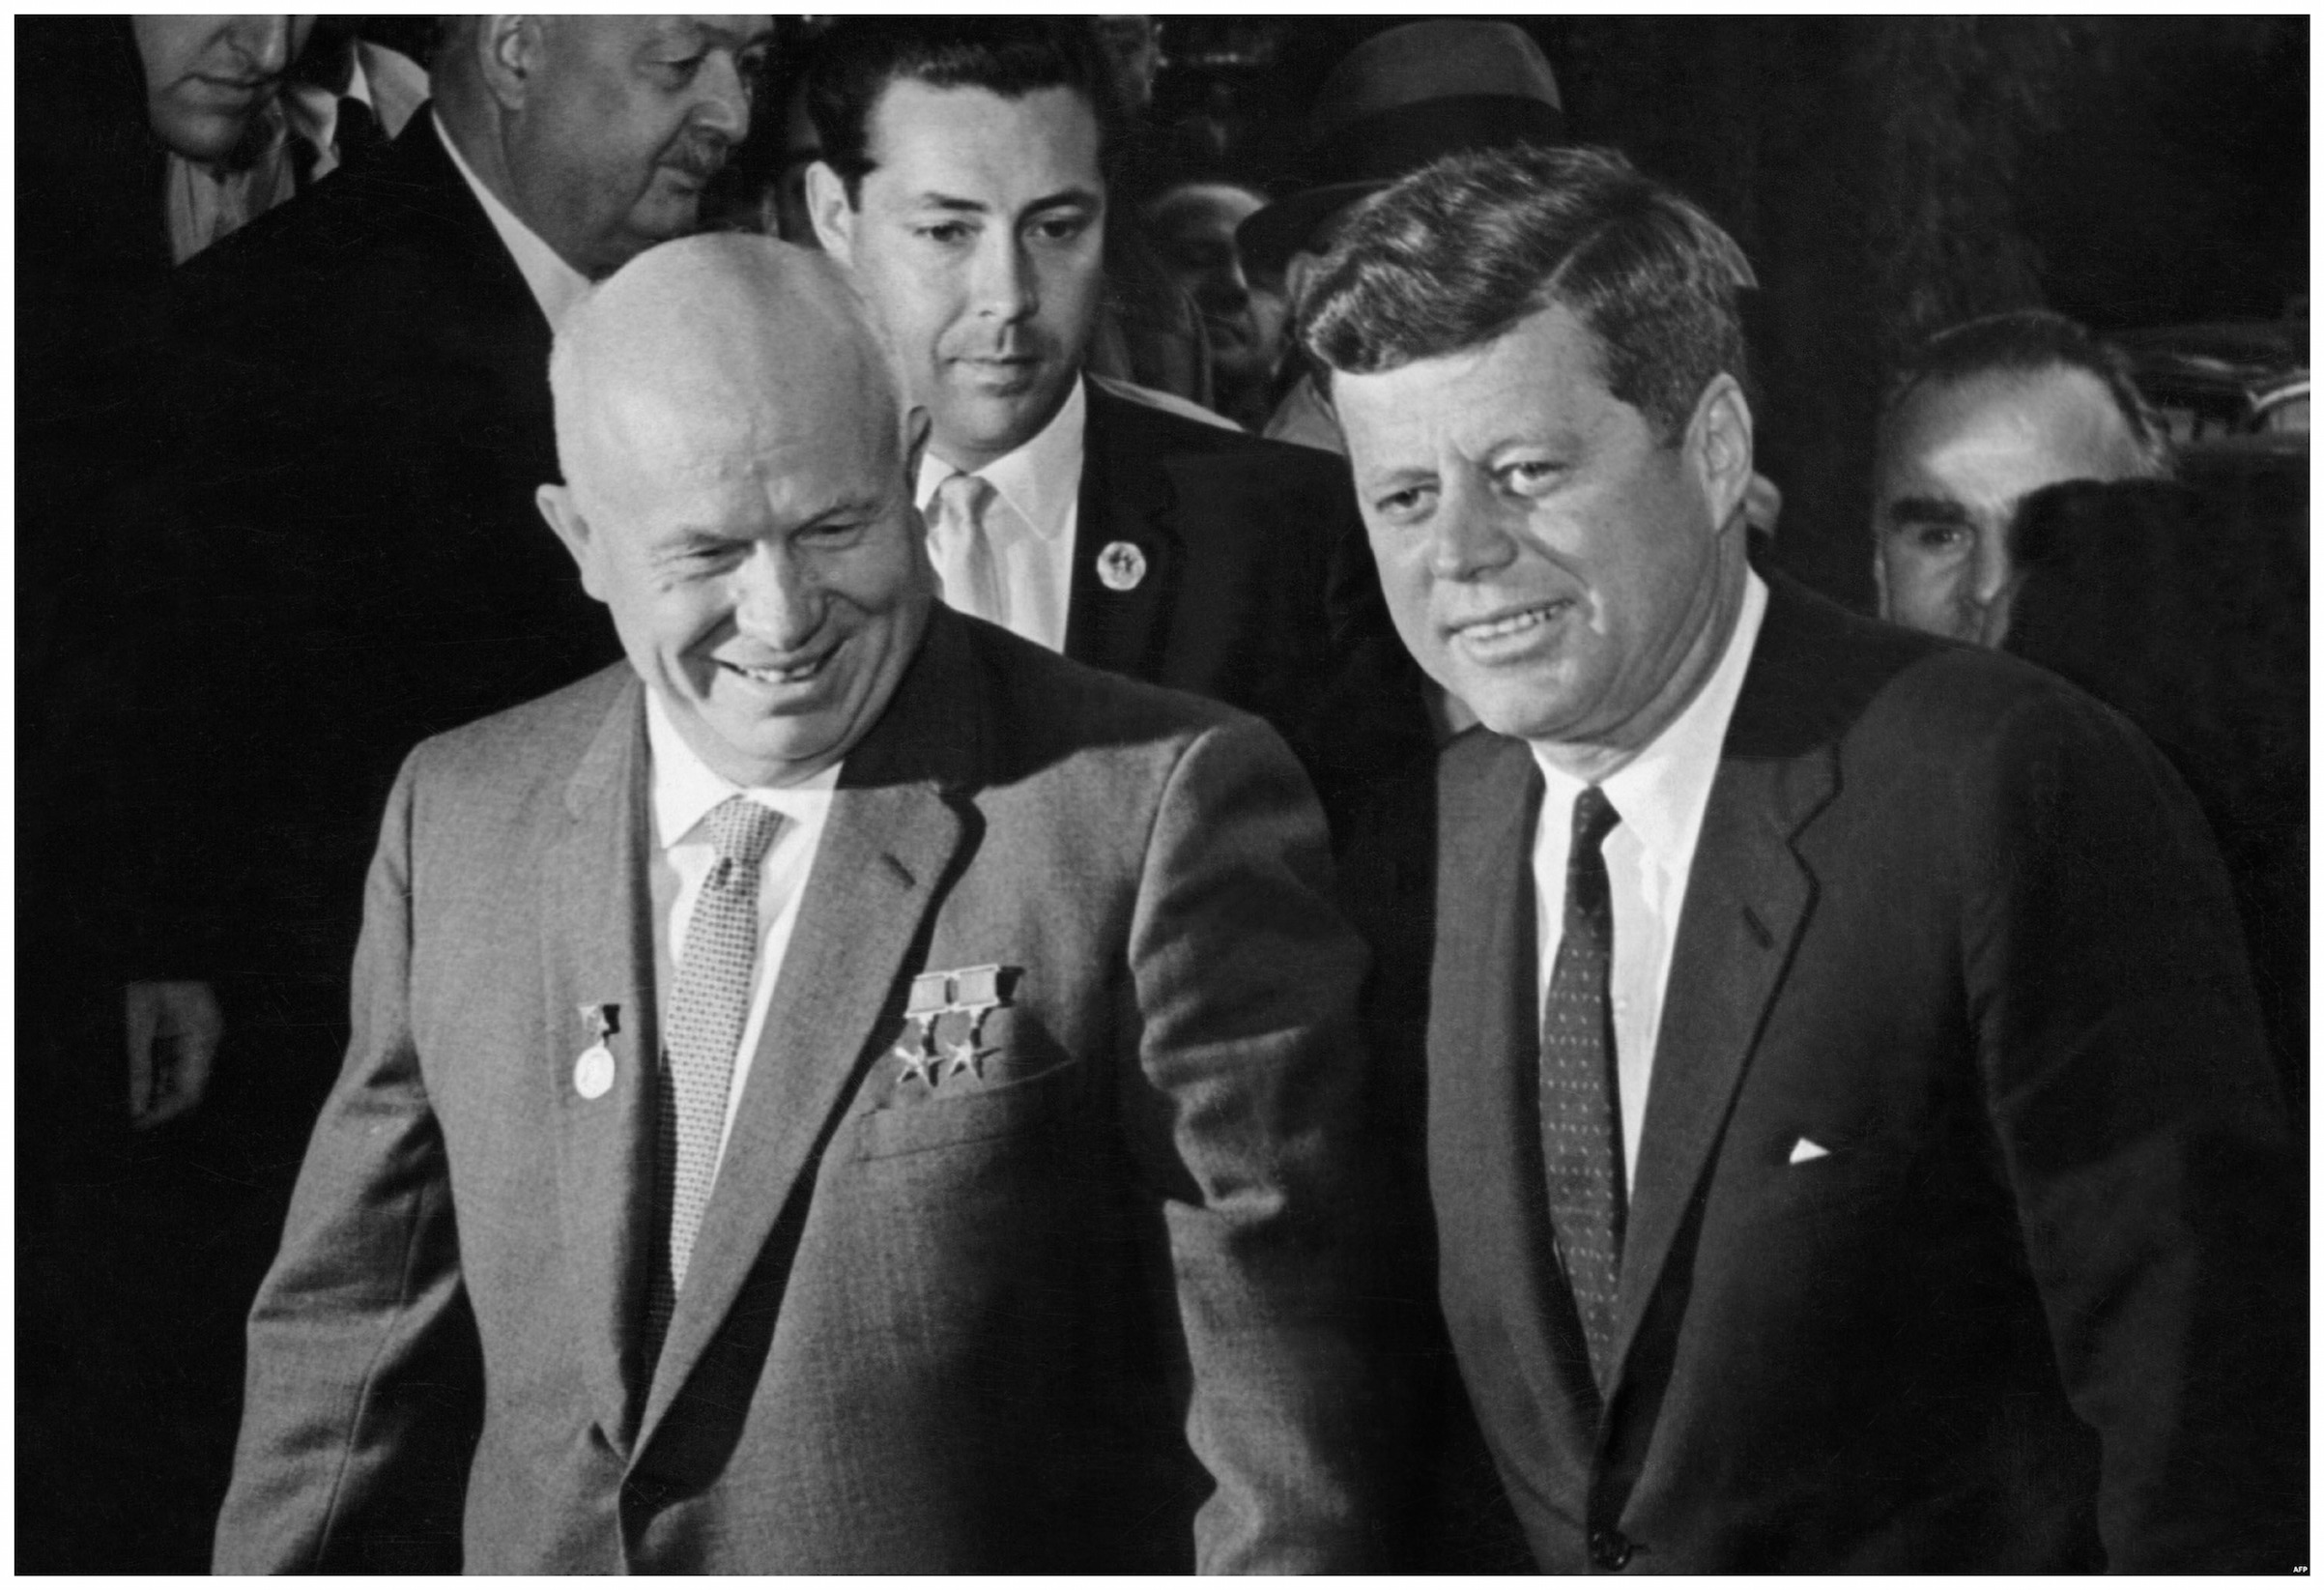 On June 4, 1961, in Vienna, President John F. Kennedy of the United States and Premier Nikita Khrushchev of the Soviet Union meet